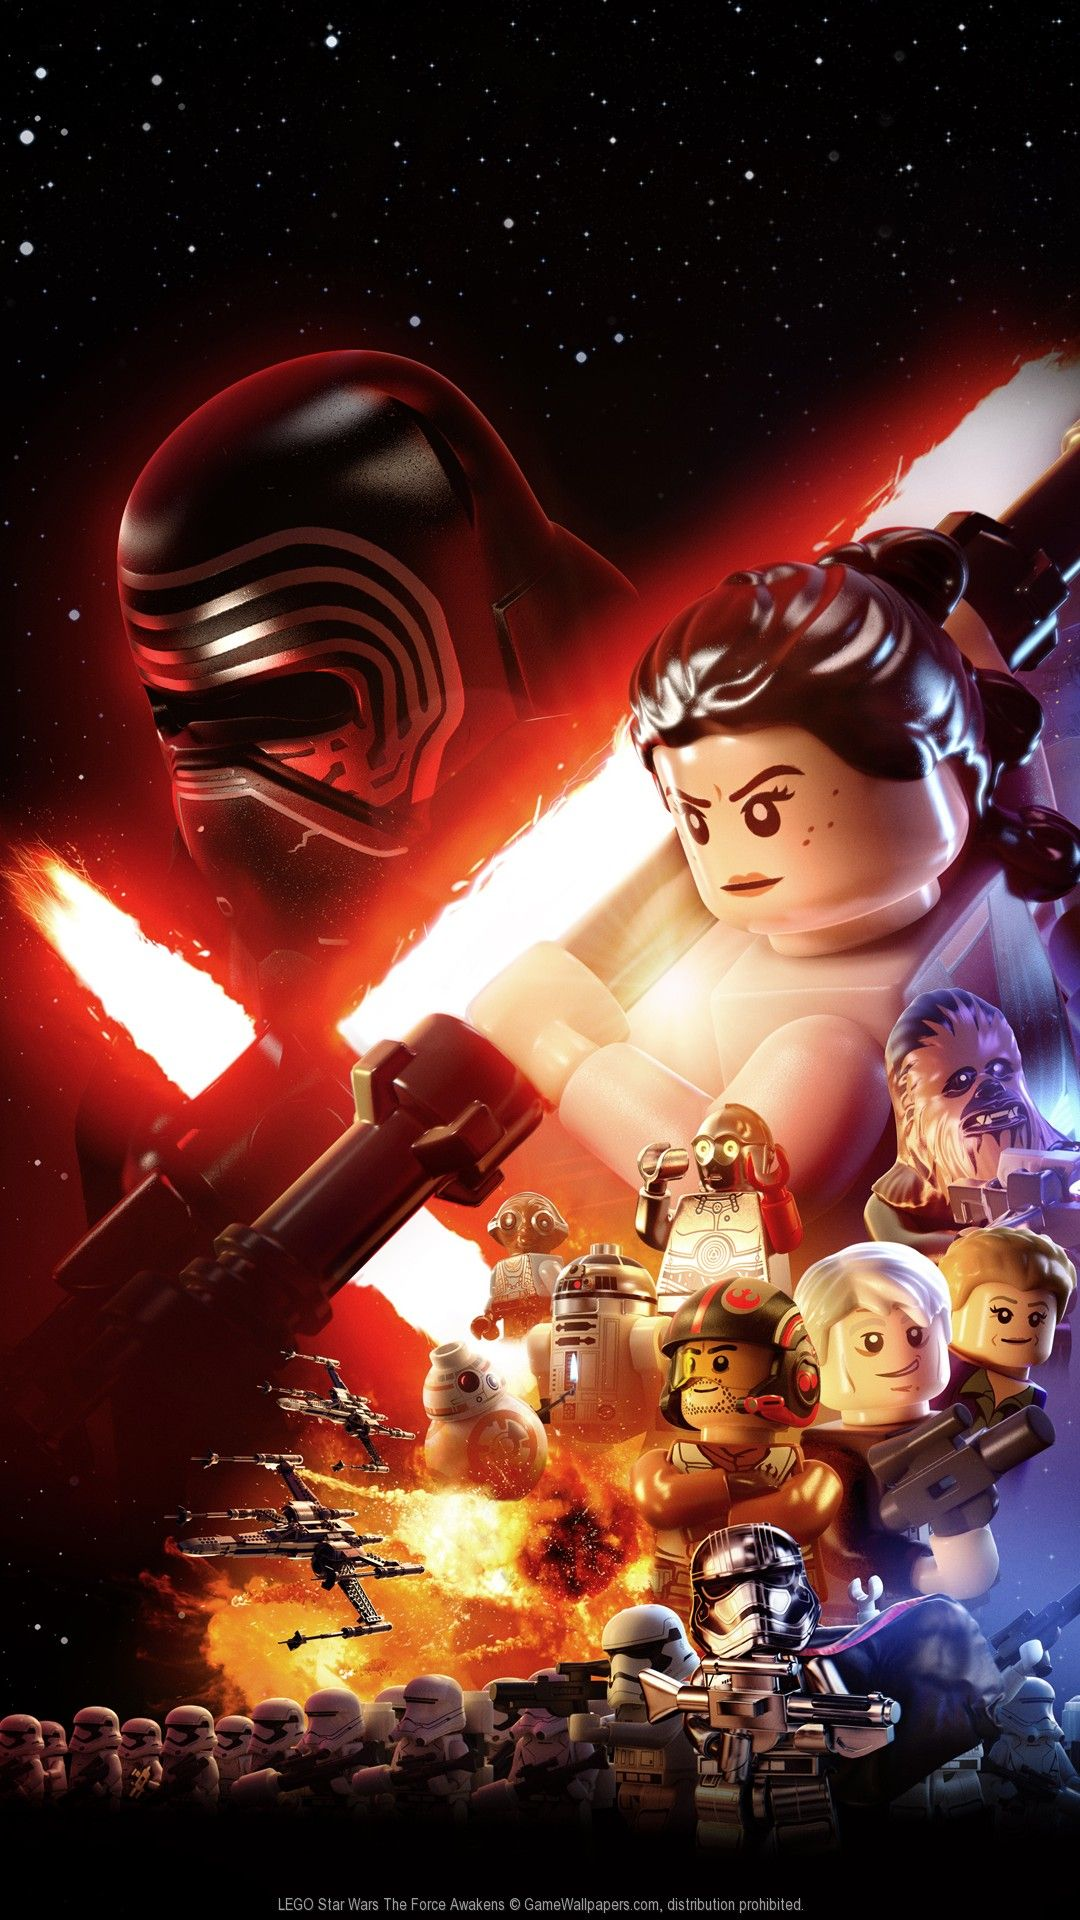 11 Lego Star Wars iPhone Wallpapers - WallpaperBoat